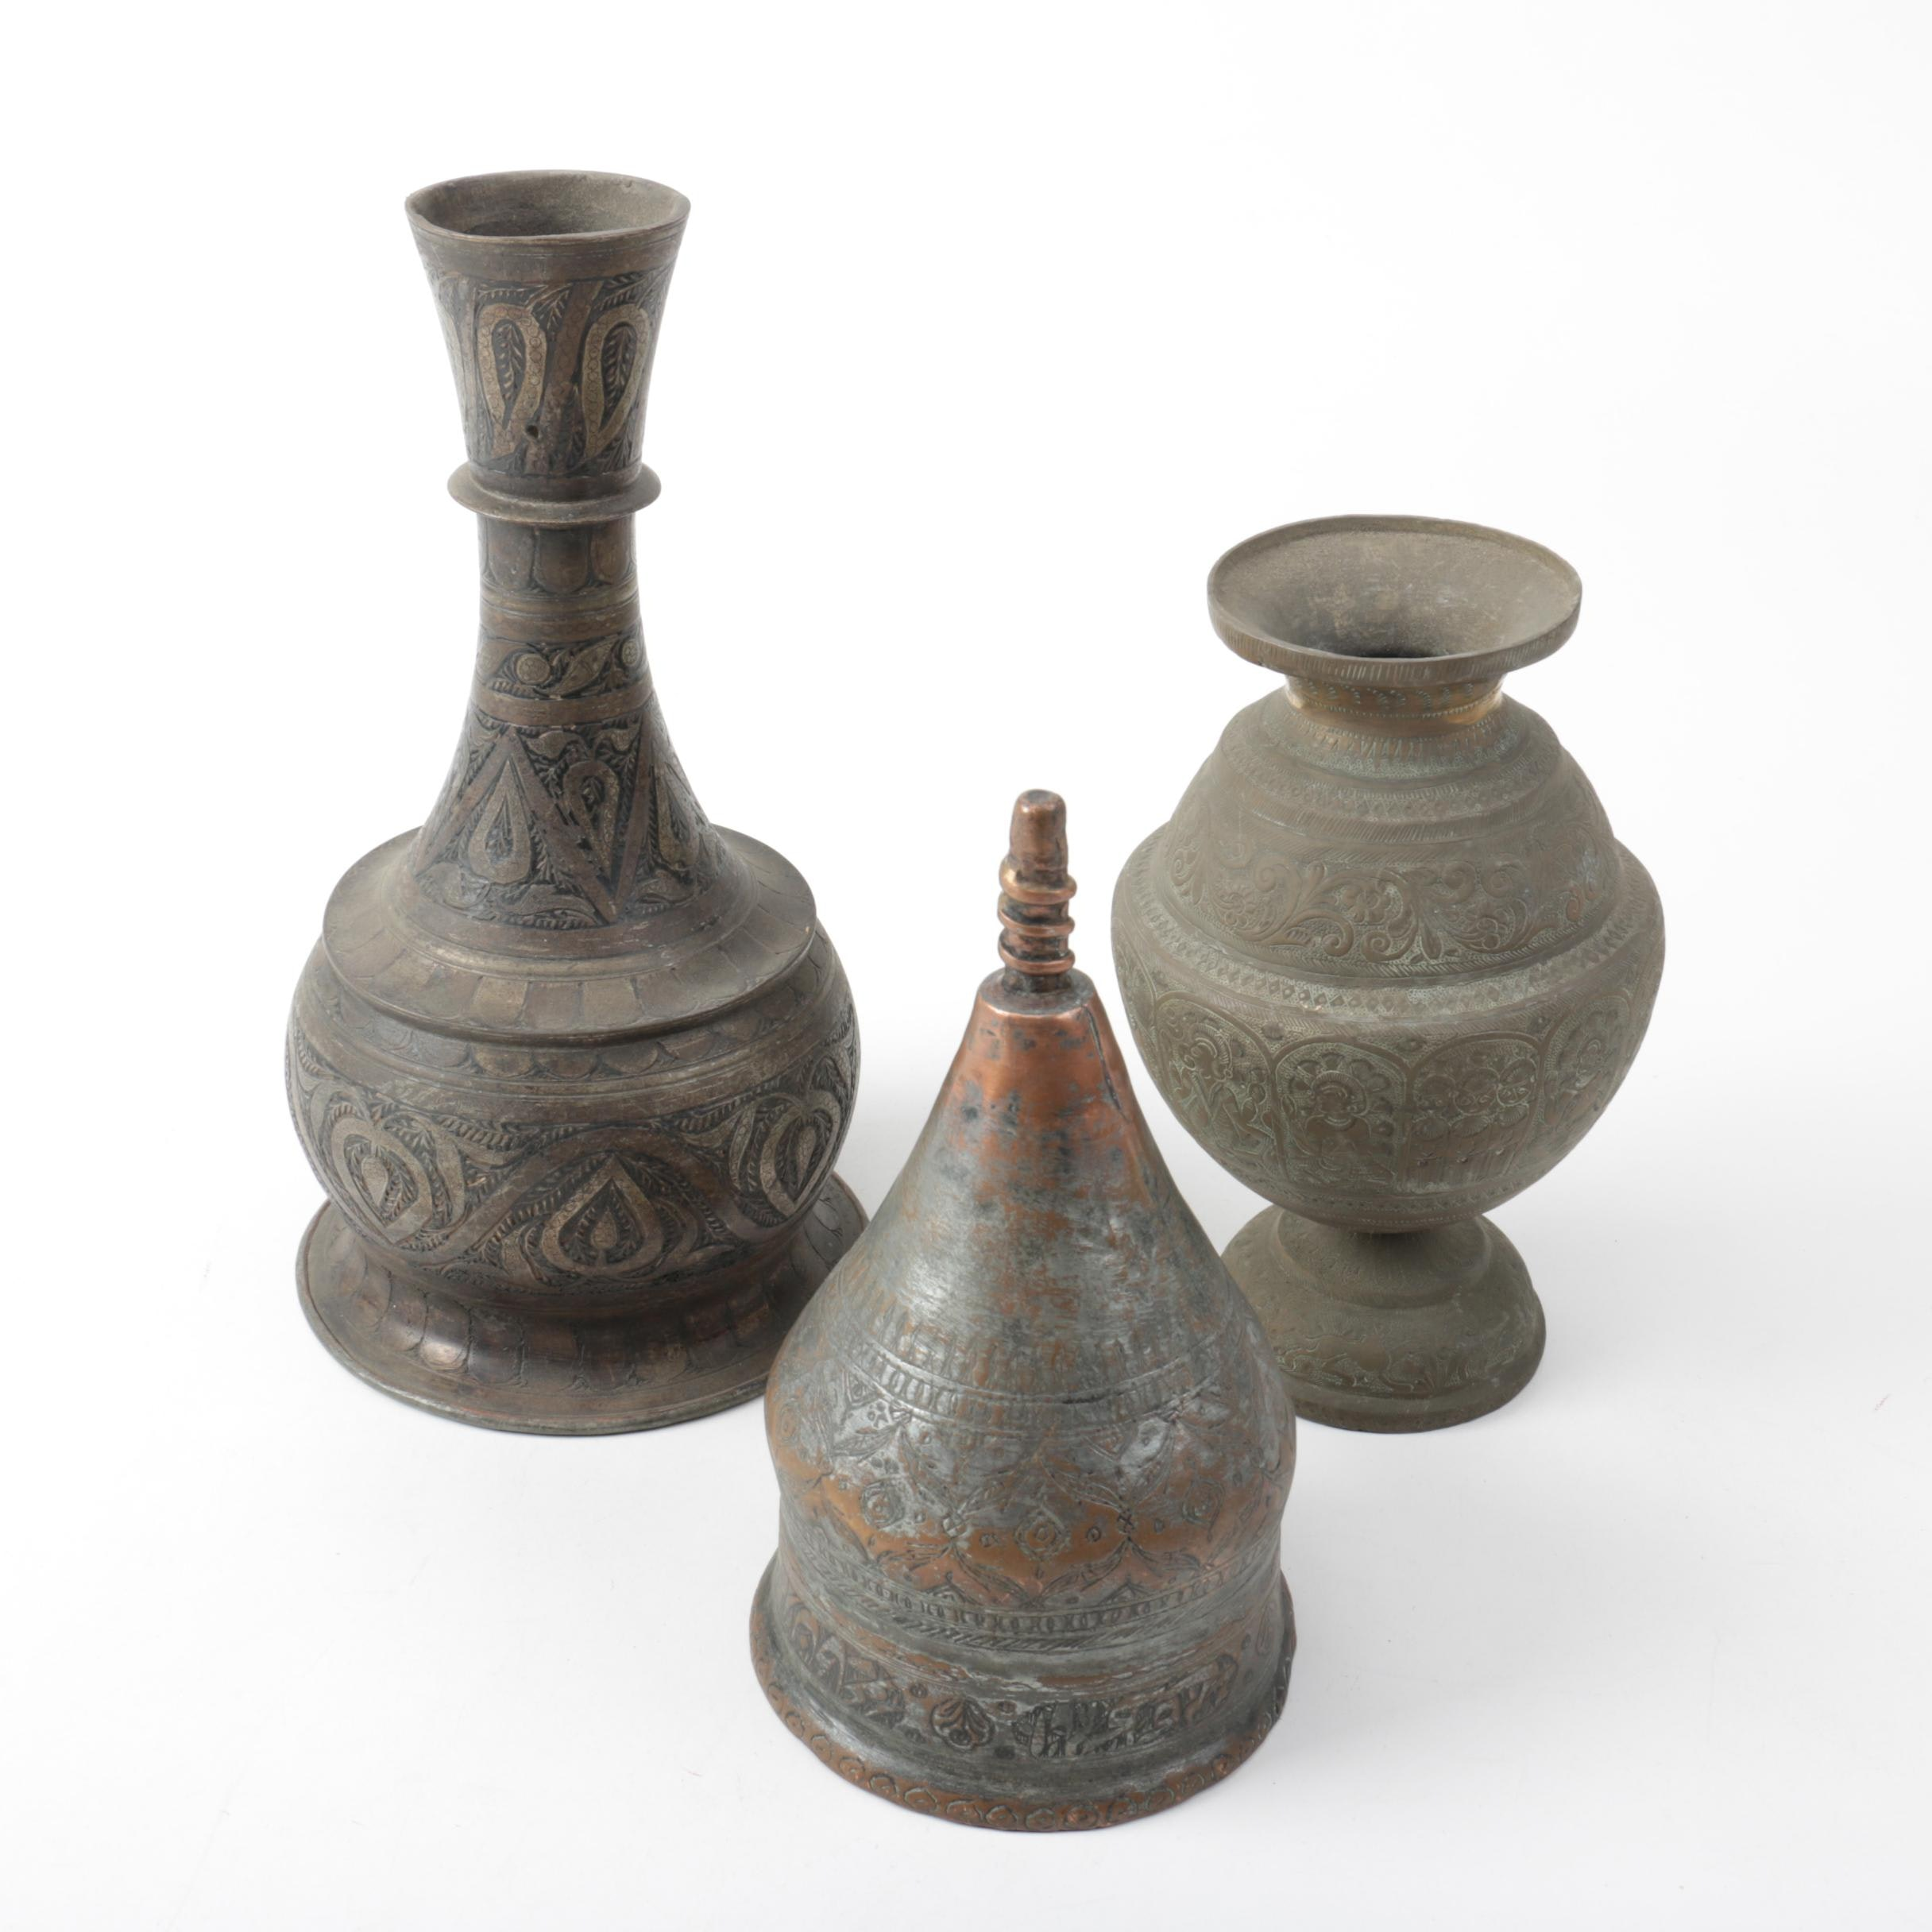 Brass Vases and Bell